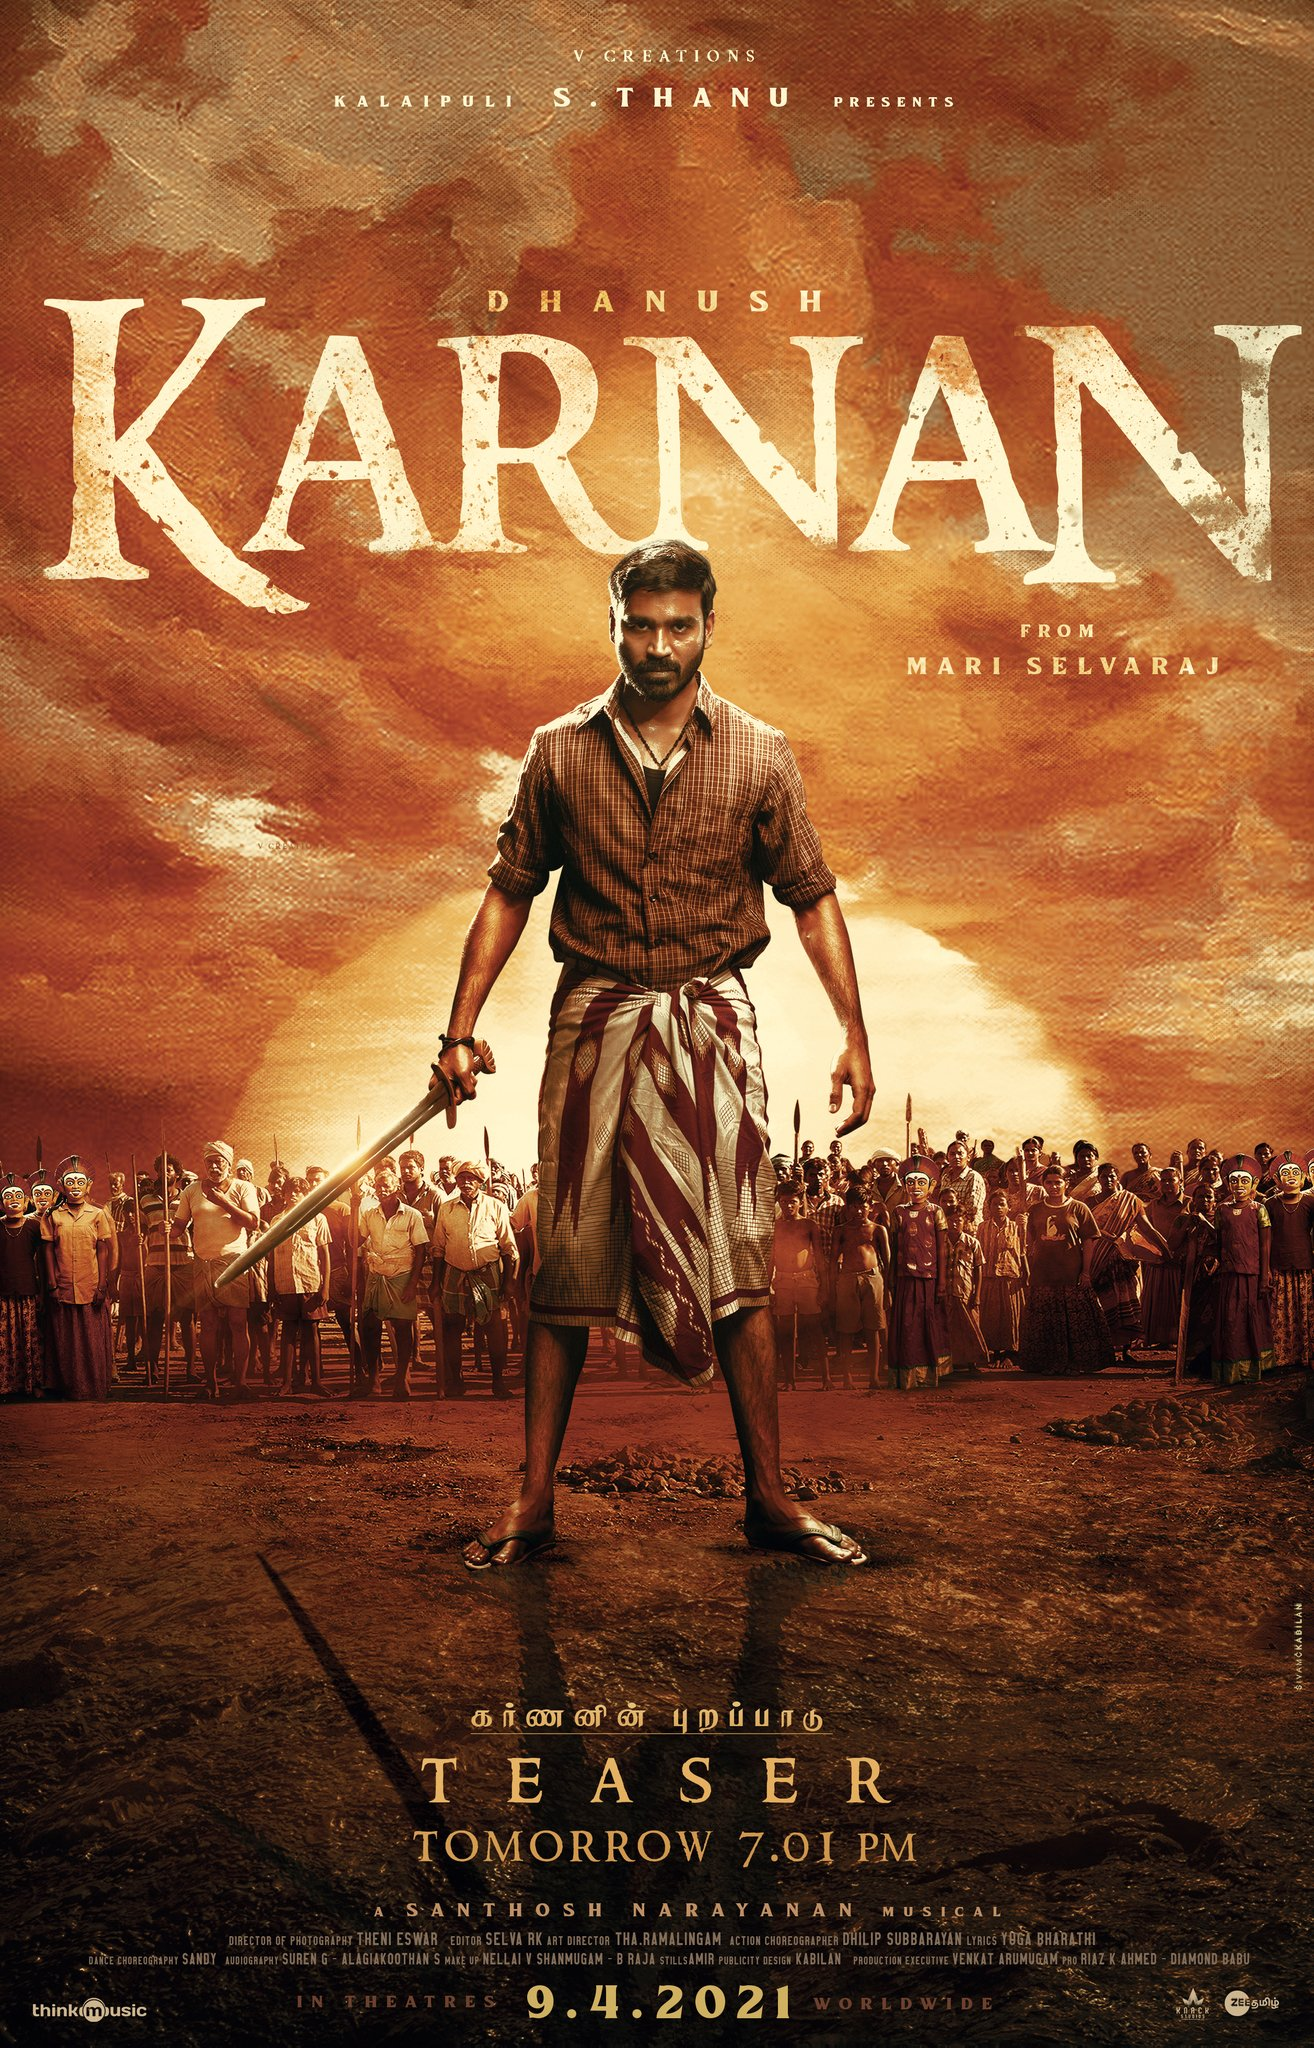 Karnan 2021 Tamil 720p AMZN HDRip ESubs 1.24GB Download